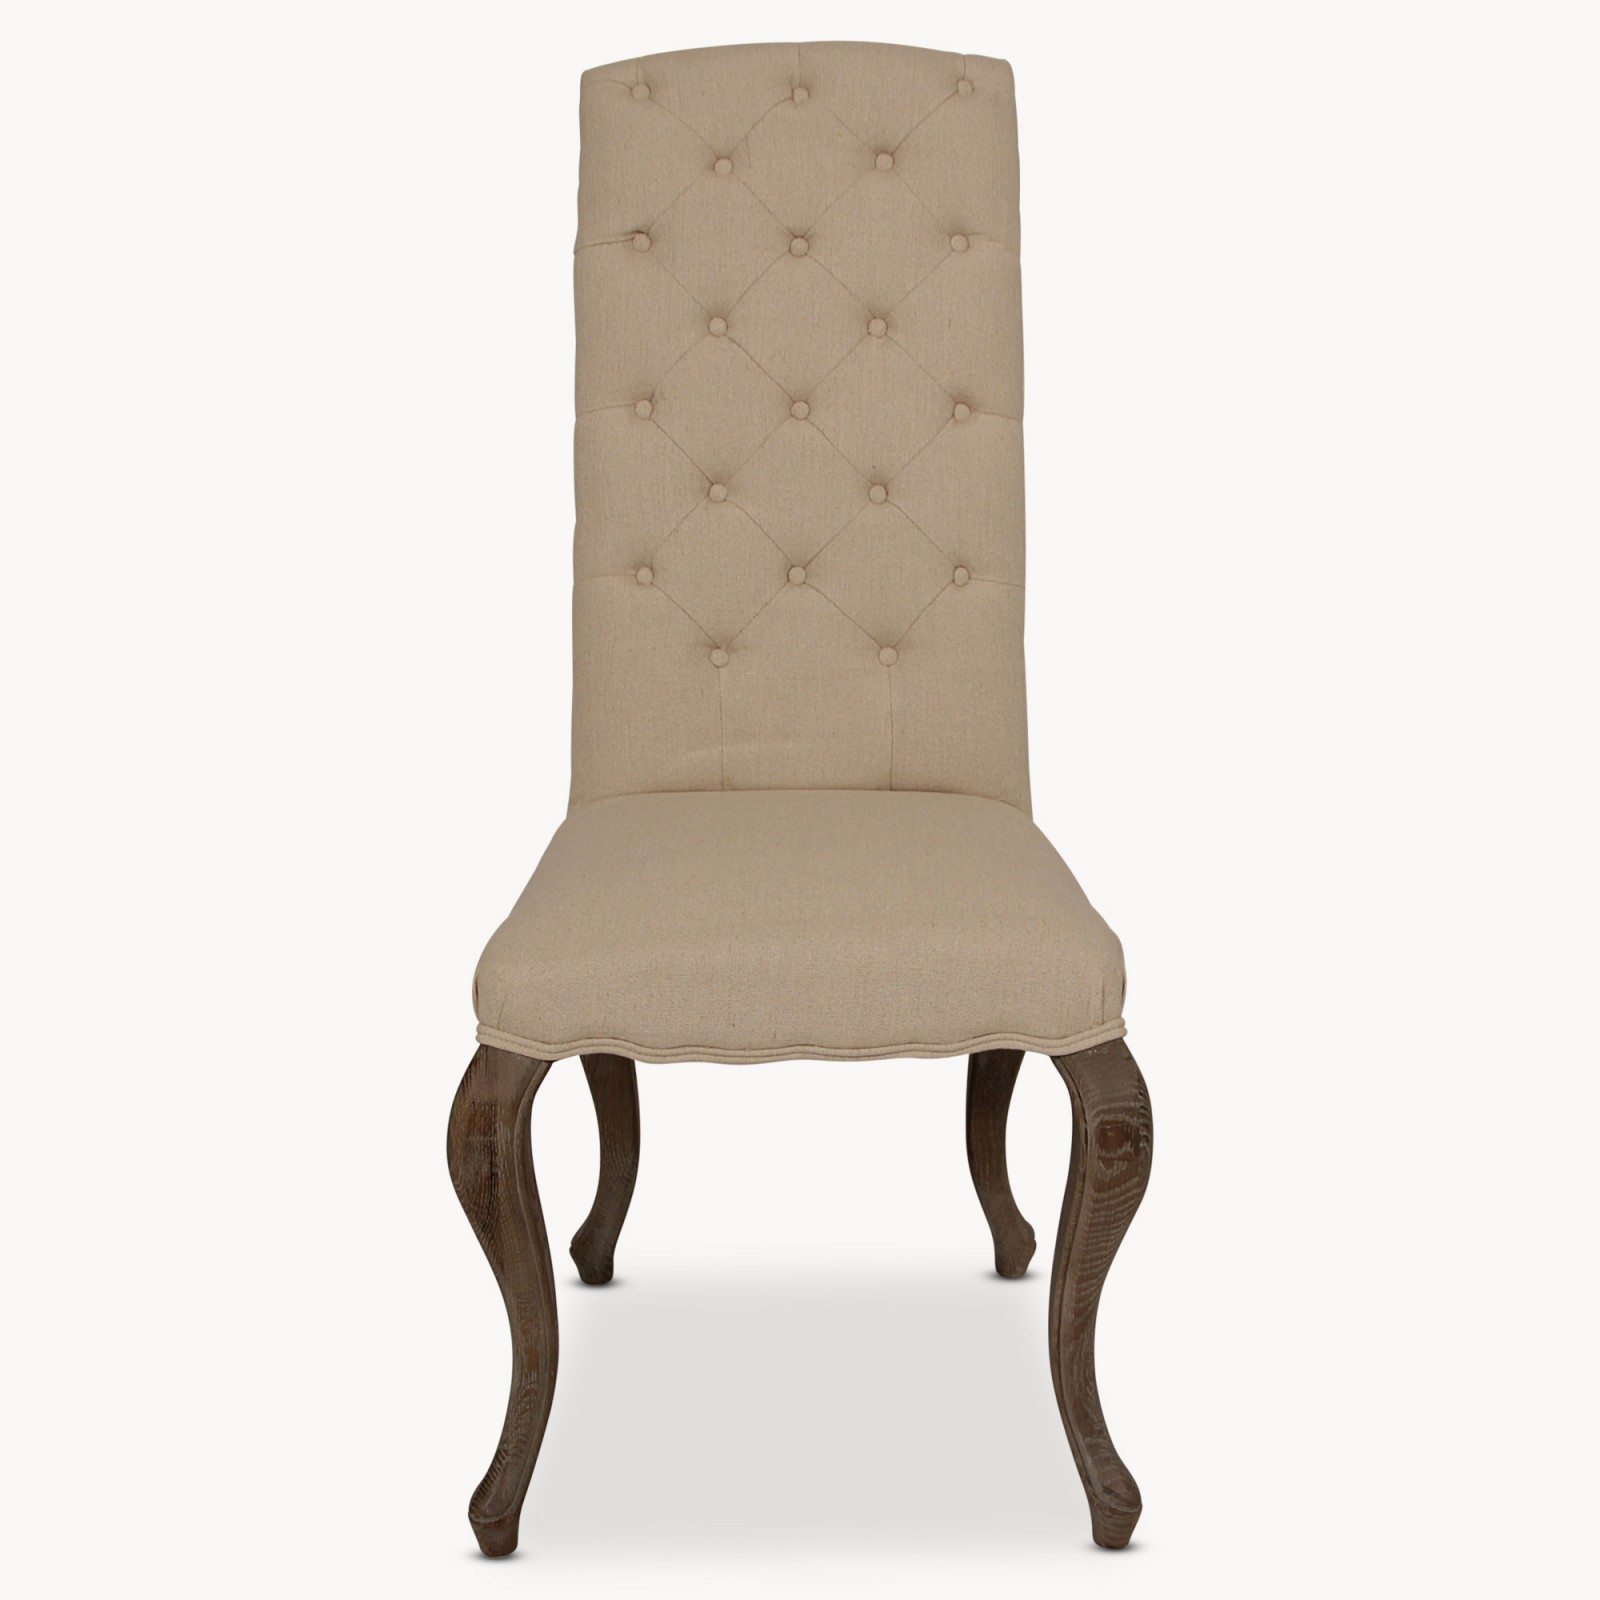 Ow Kingswood Natural Linen Dining Chair With Oak Legs